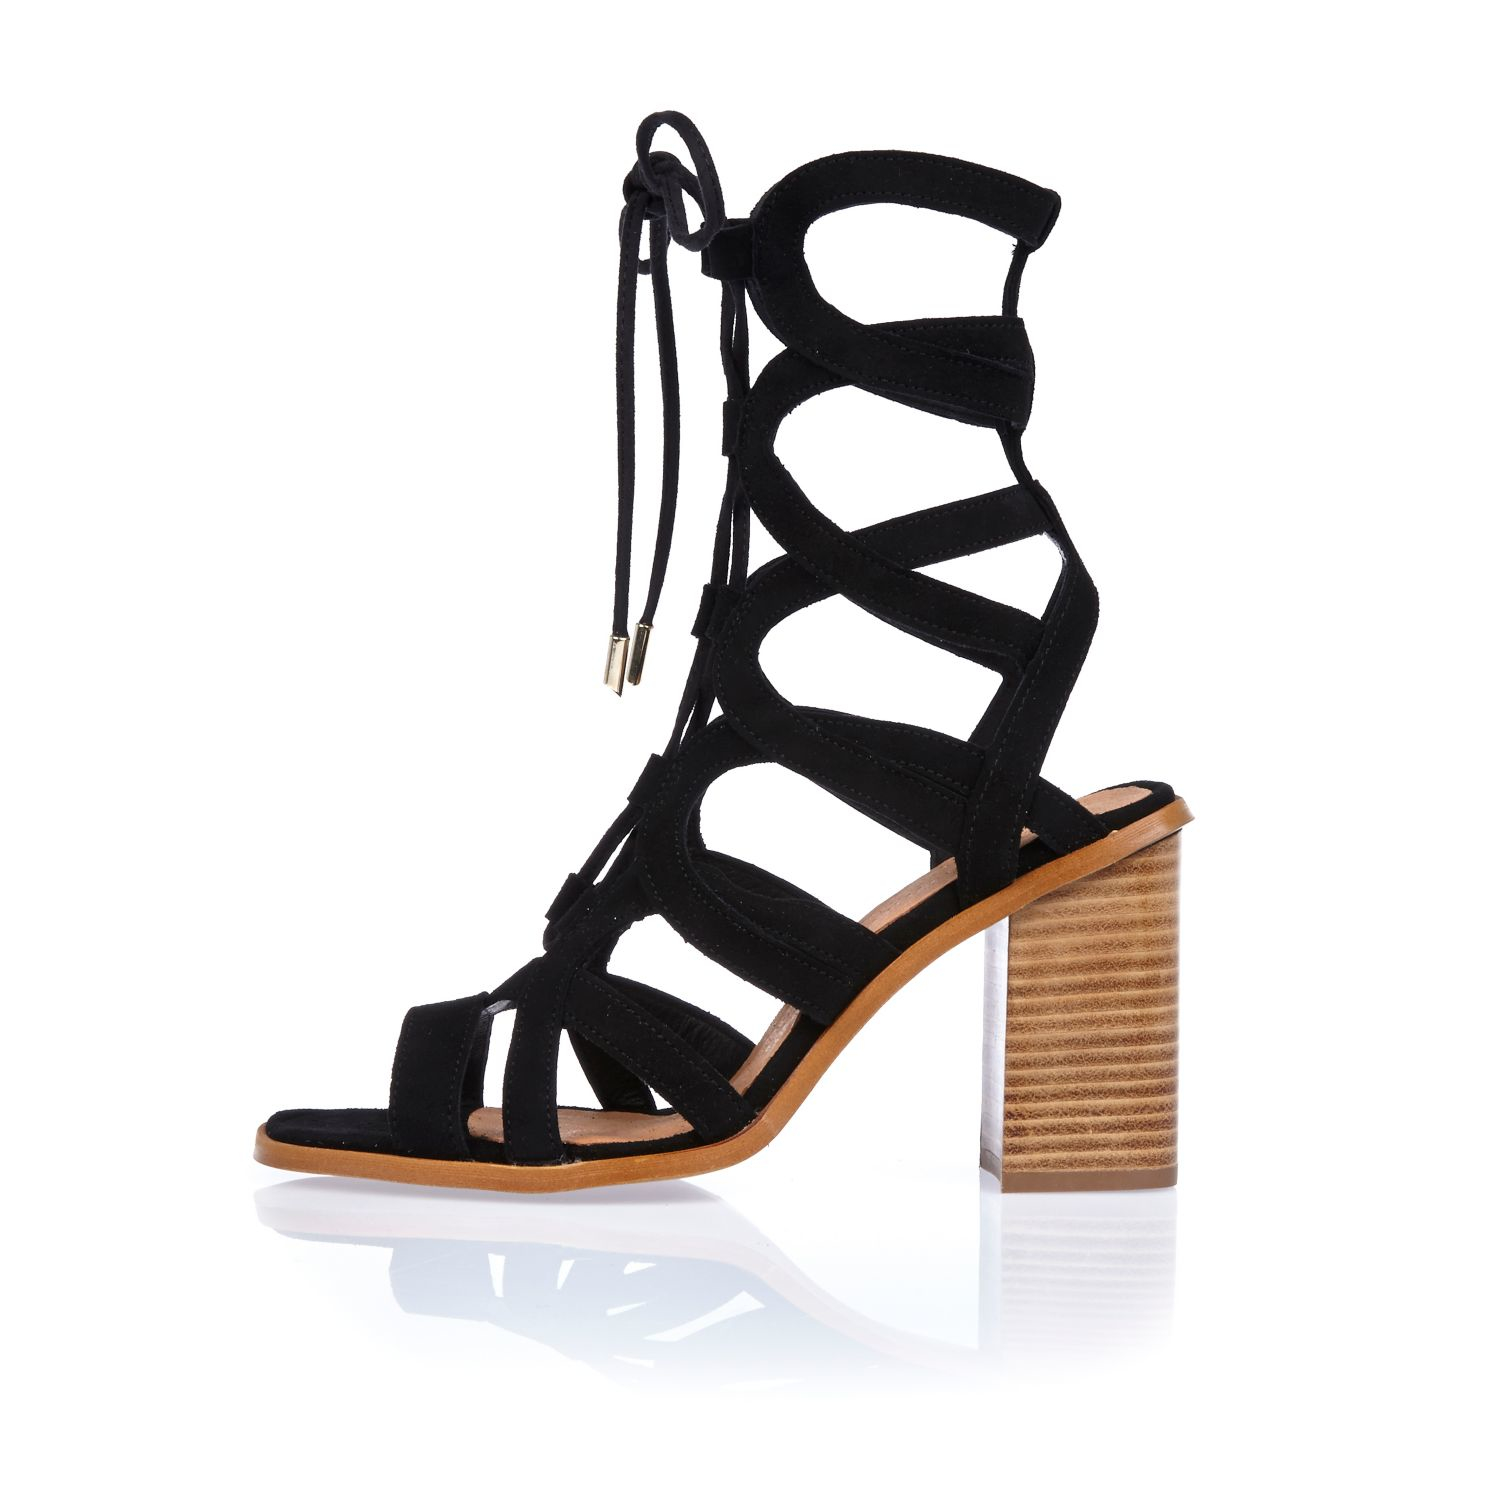 618a510e002 River Island Black Suede Lace-up Caged Block Heel Sandals in Black ...